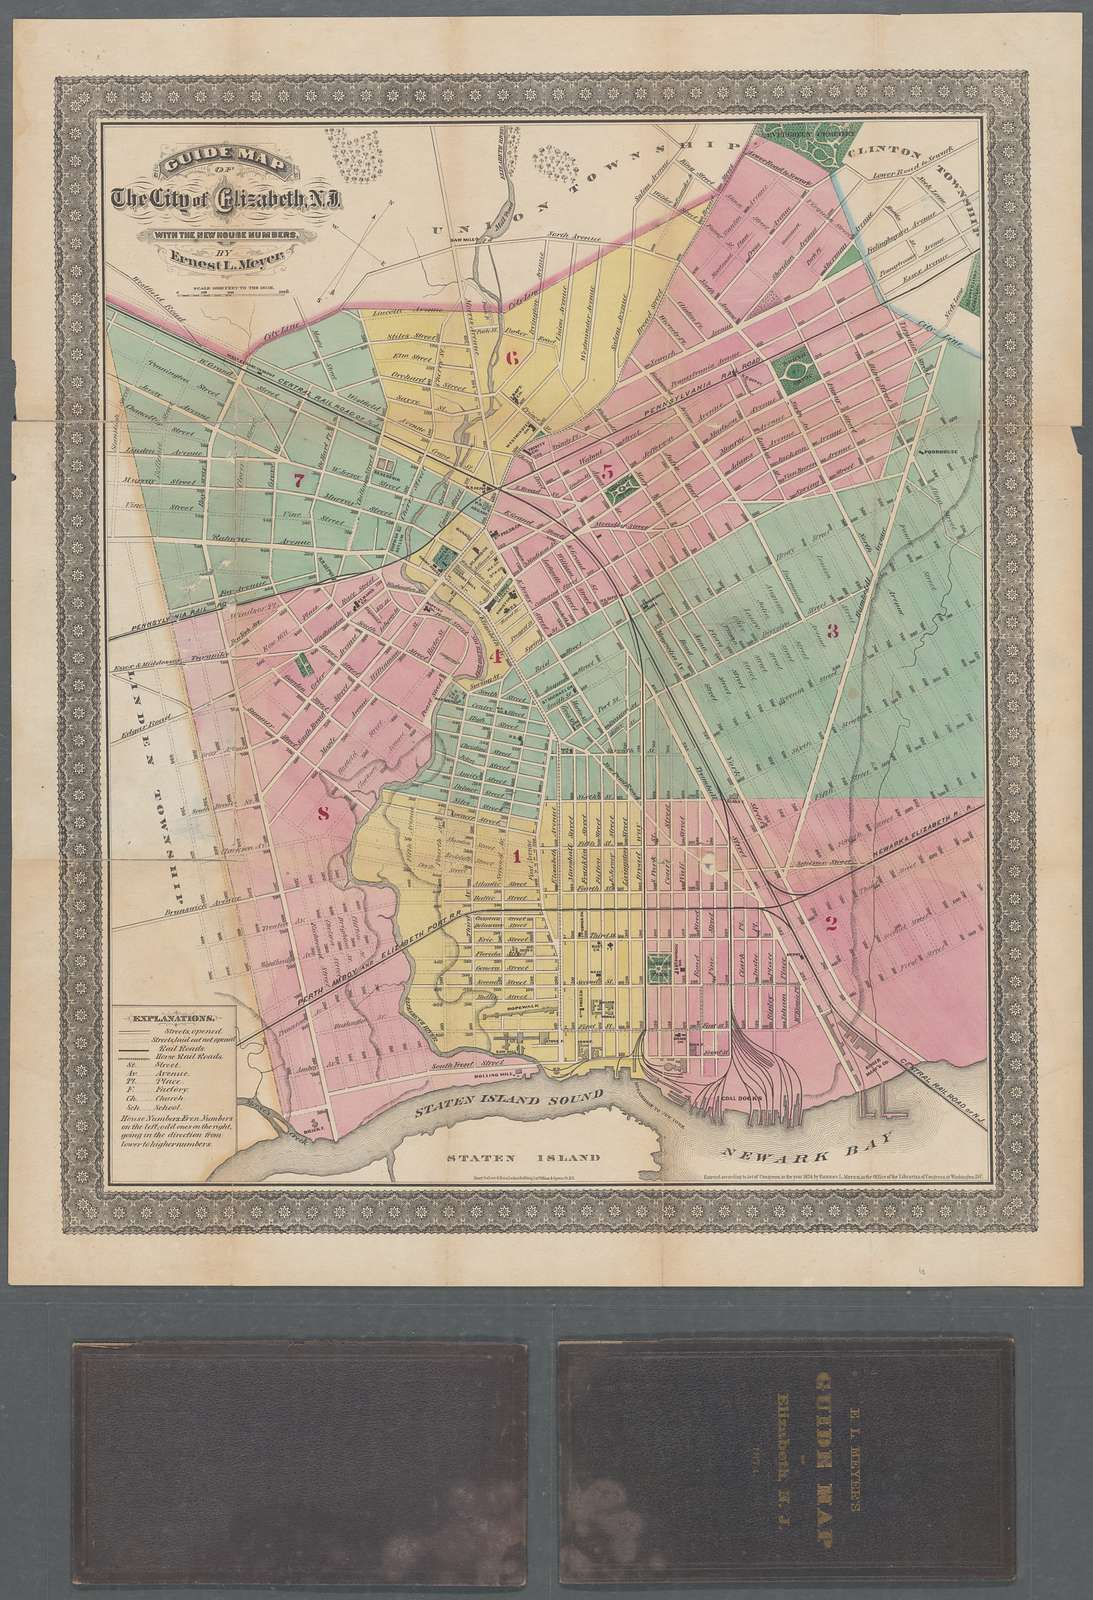 Guide map of the city of Elizabeth, N.J. with the new house numbers